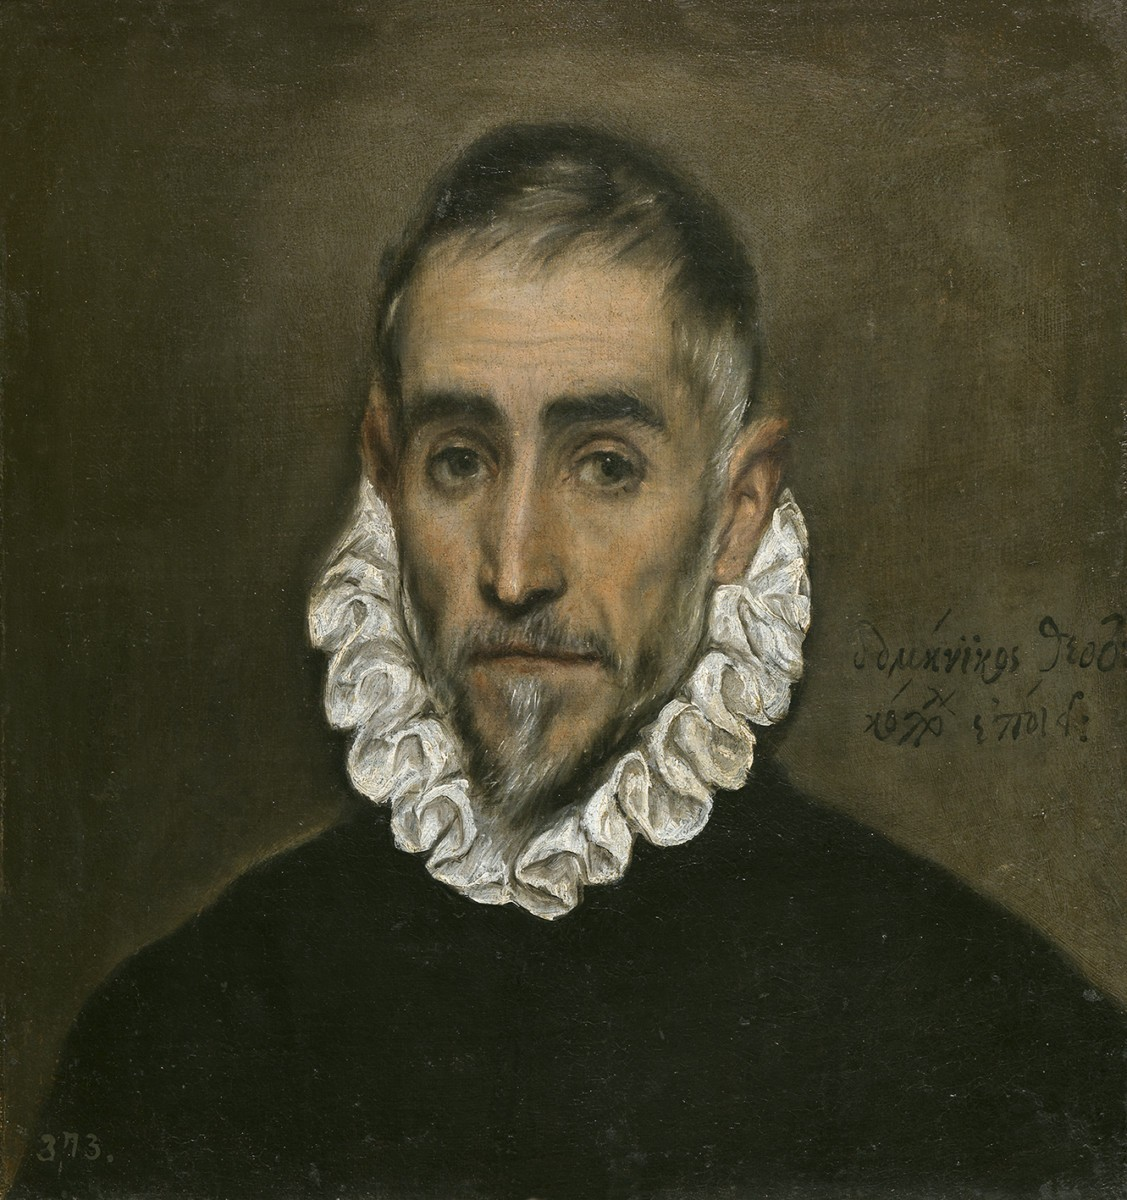 El Greco- Life, paintings, contribution, death- Easy explanation | artandcrafter.com Mannerism